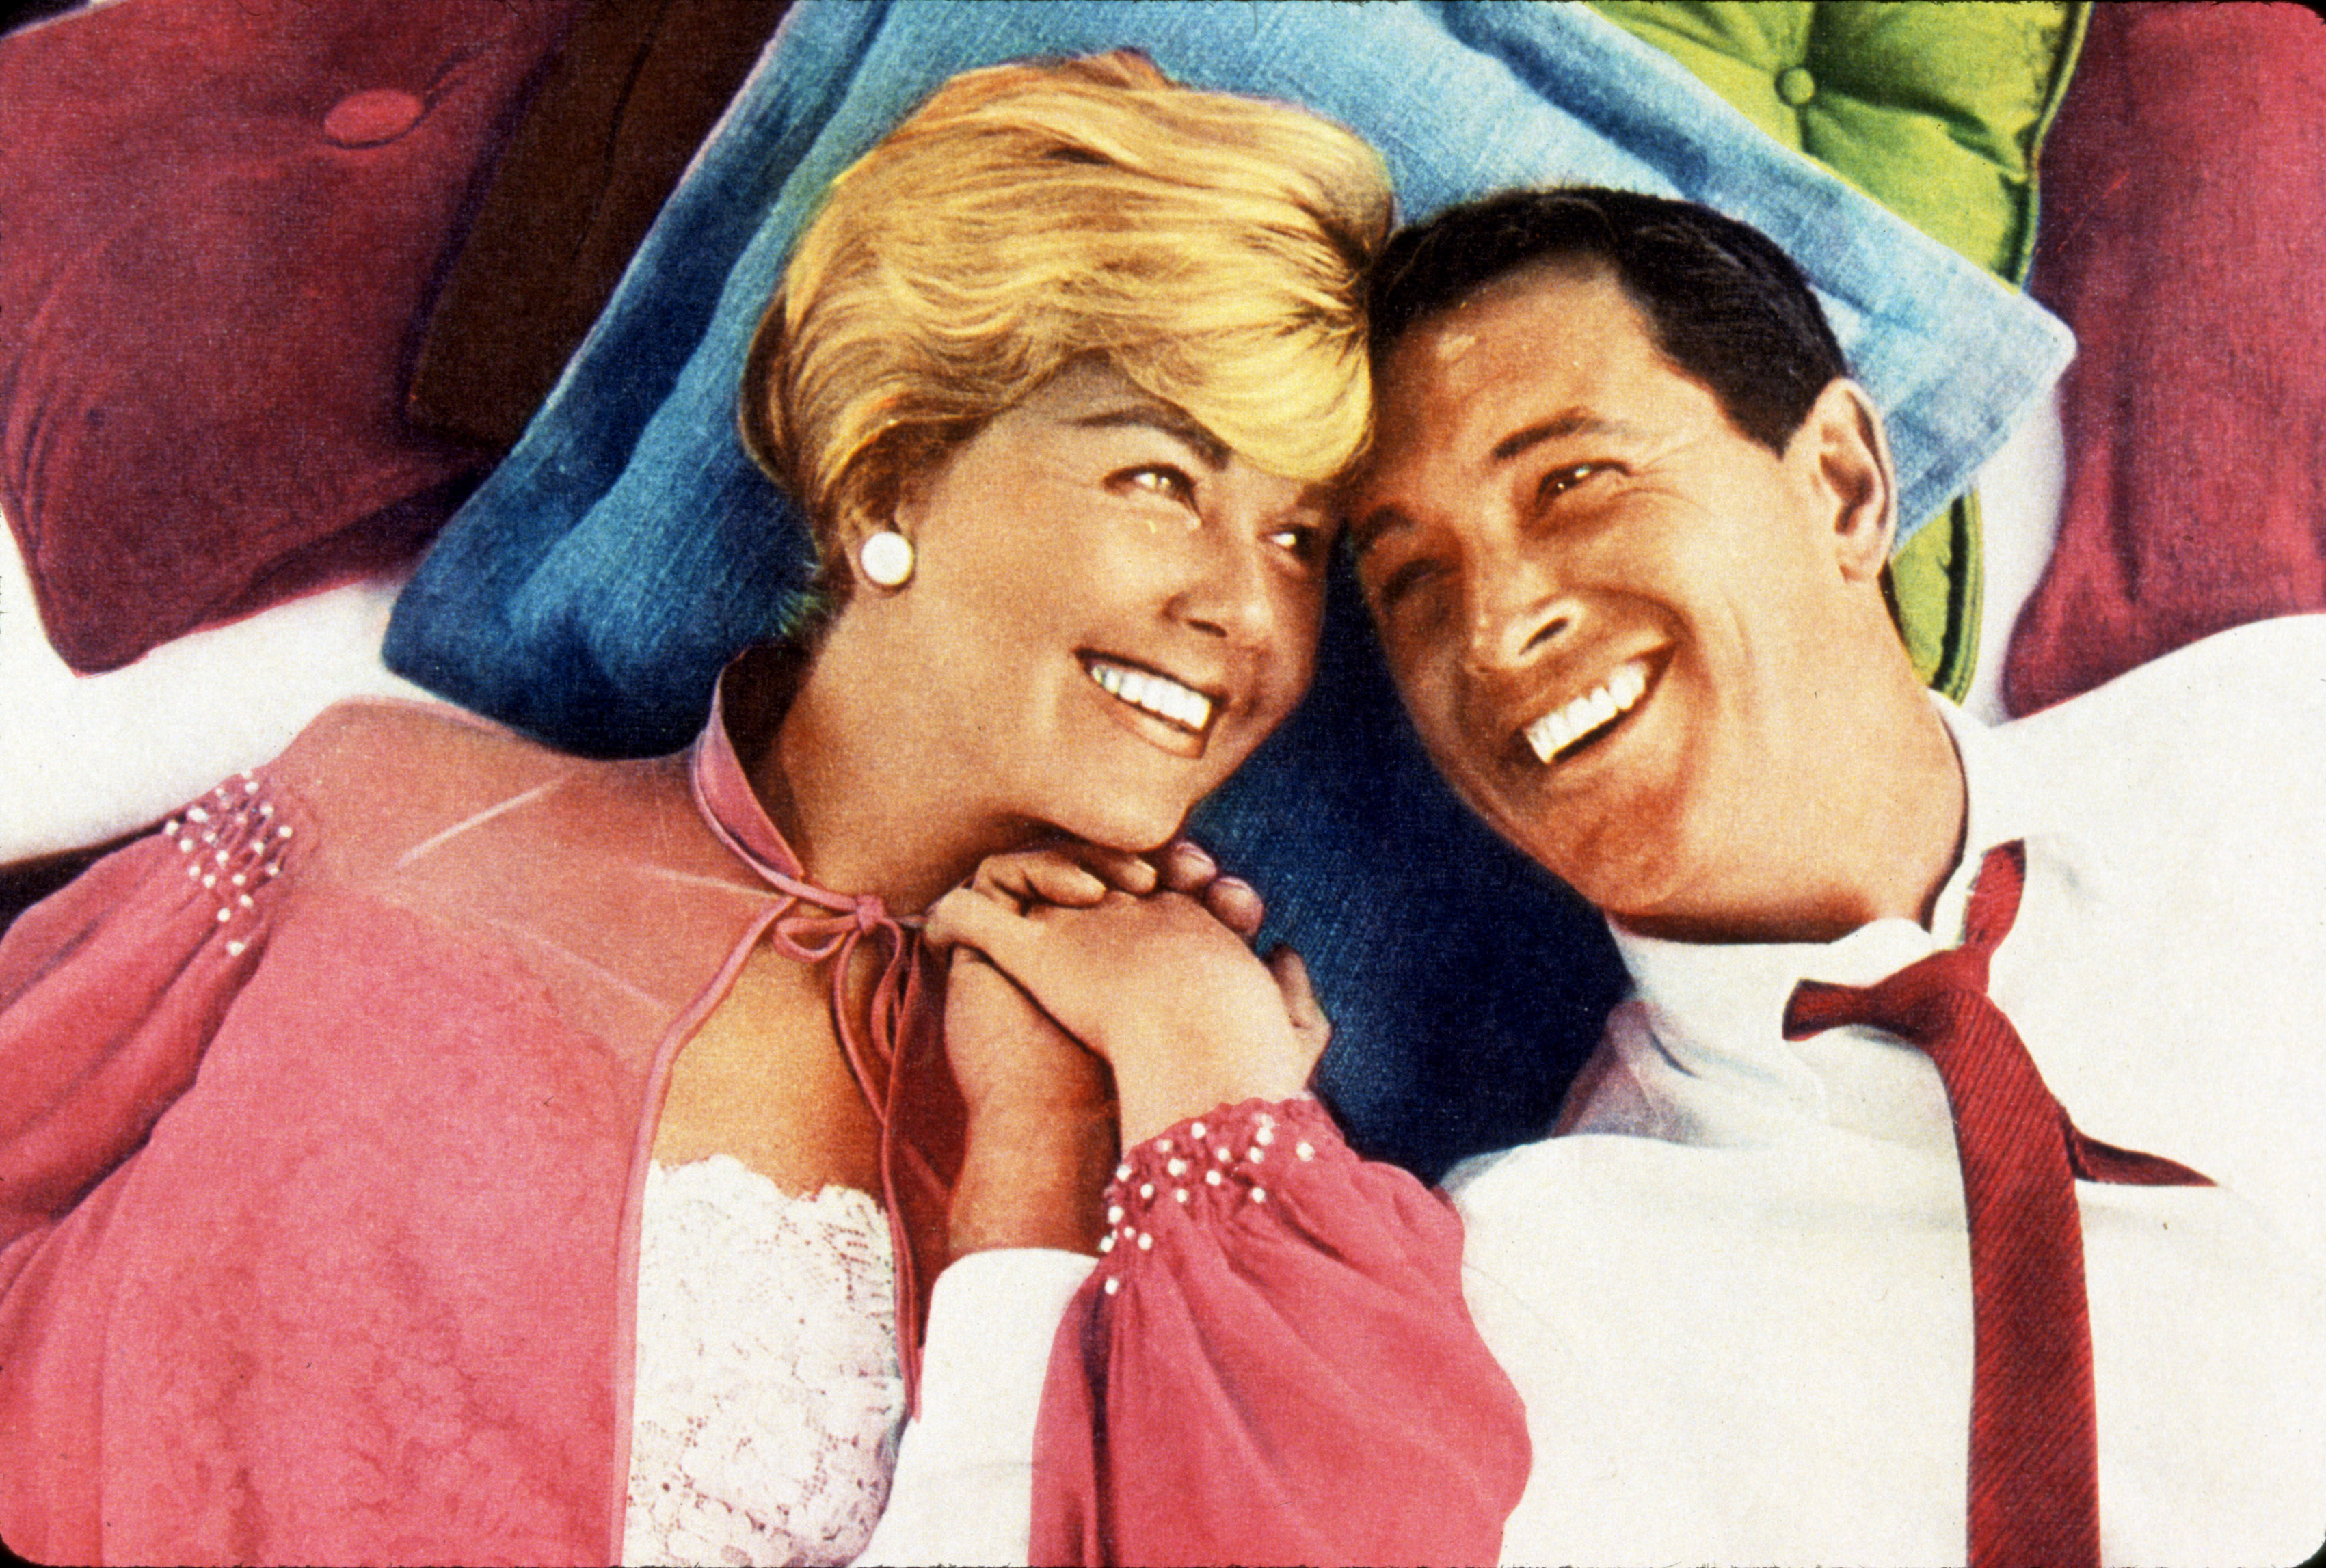 Doris Day Dies at 97: Her Gifts Were Underestimated, But Her Artistic Legacy Is Vast